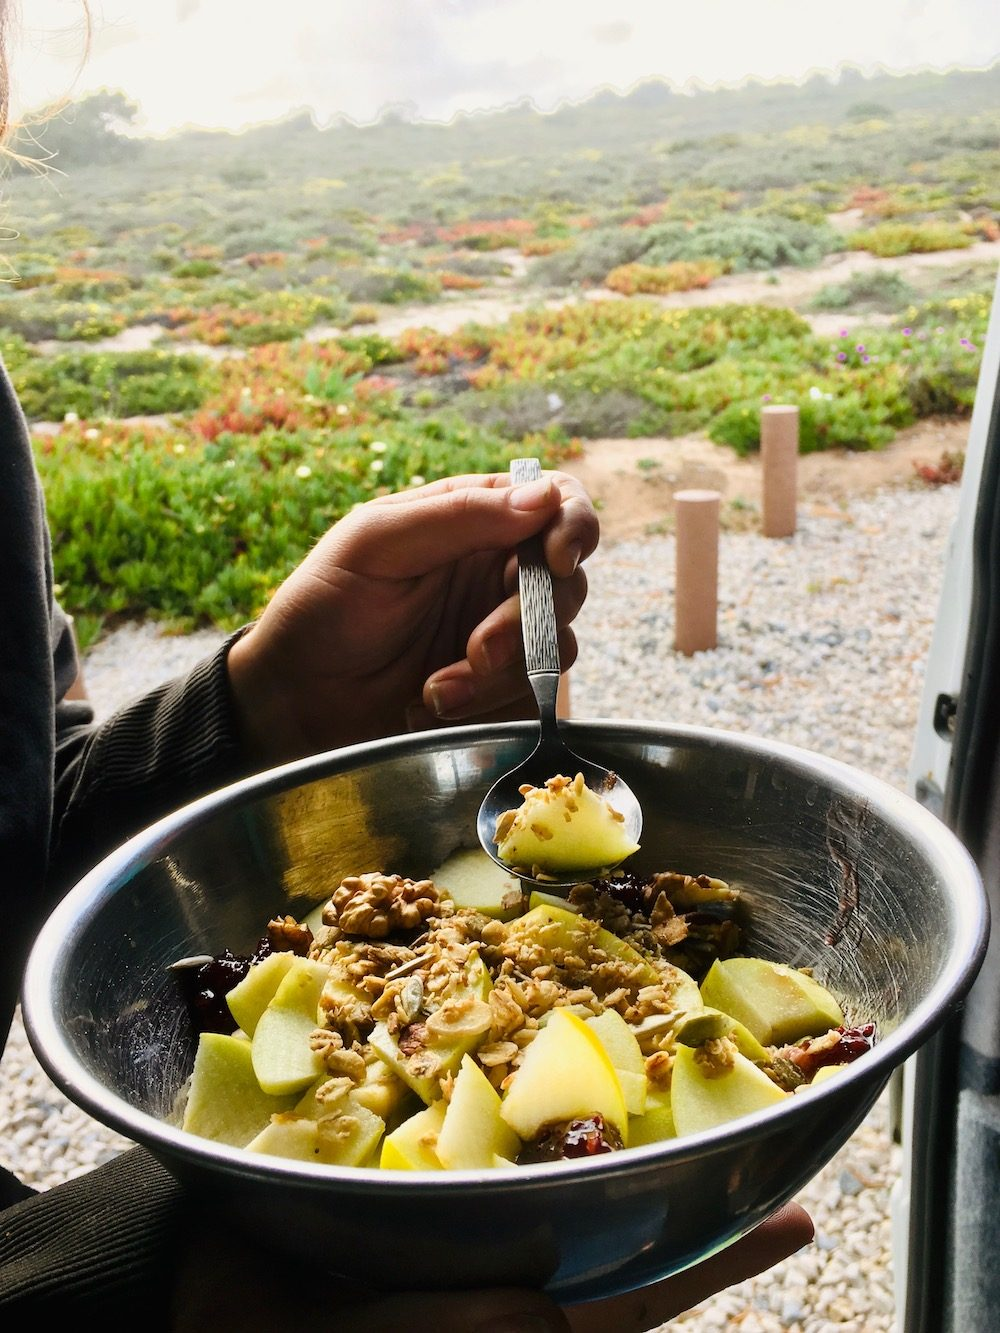 Enjoying a bowl of apple and cranberry porridge when camping in Portugal